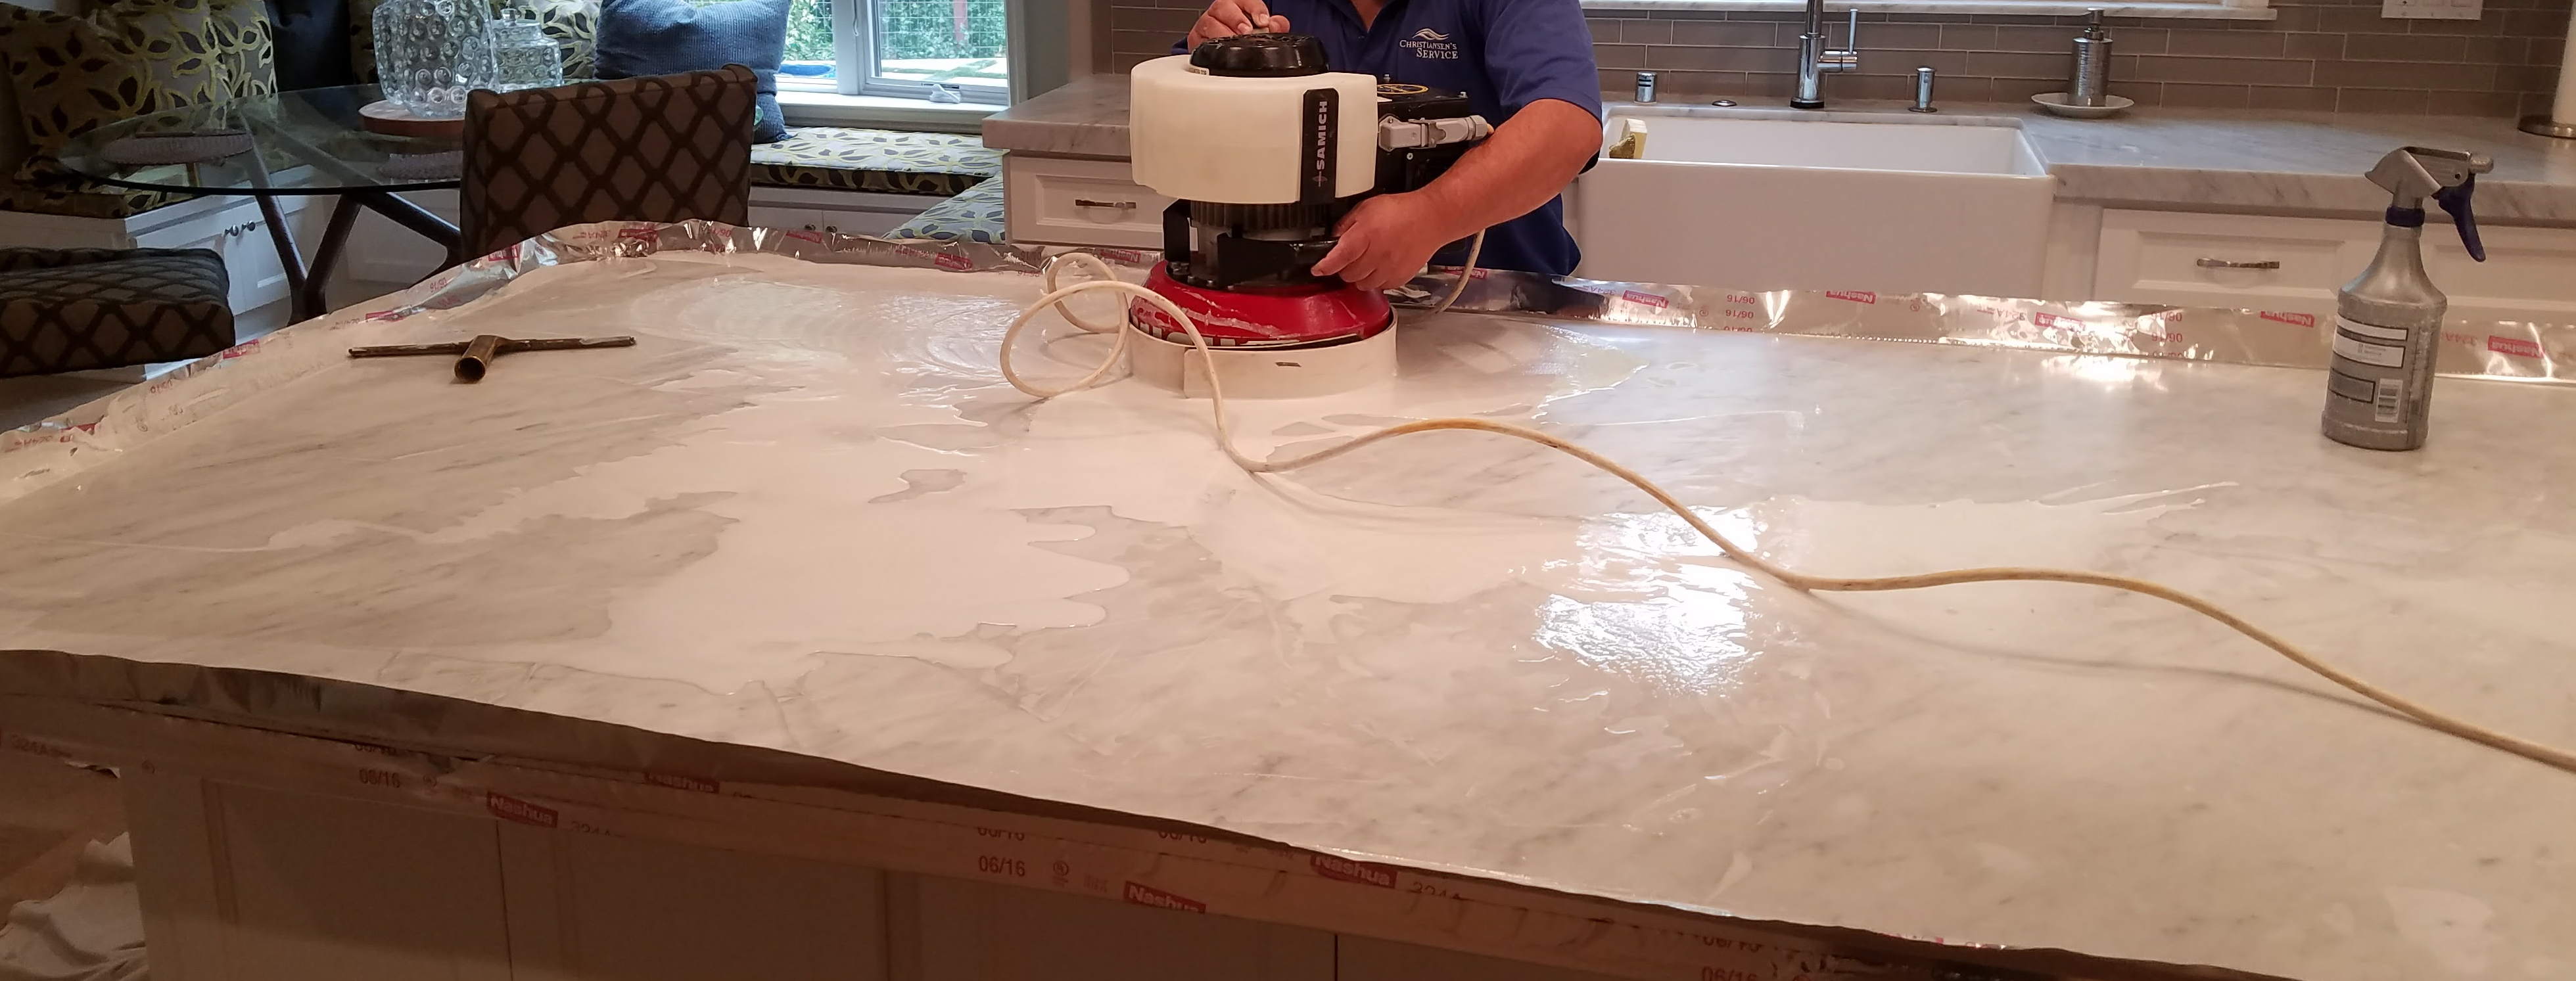 Marble counter top making into matte finish